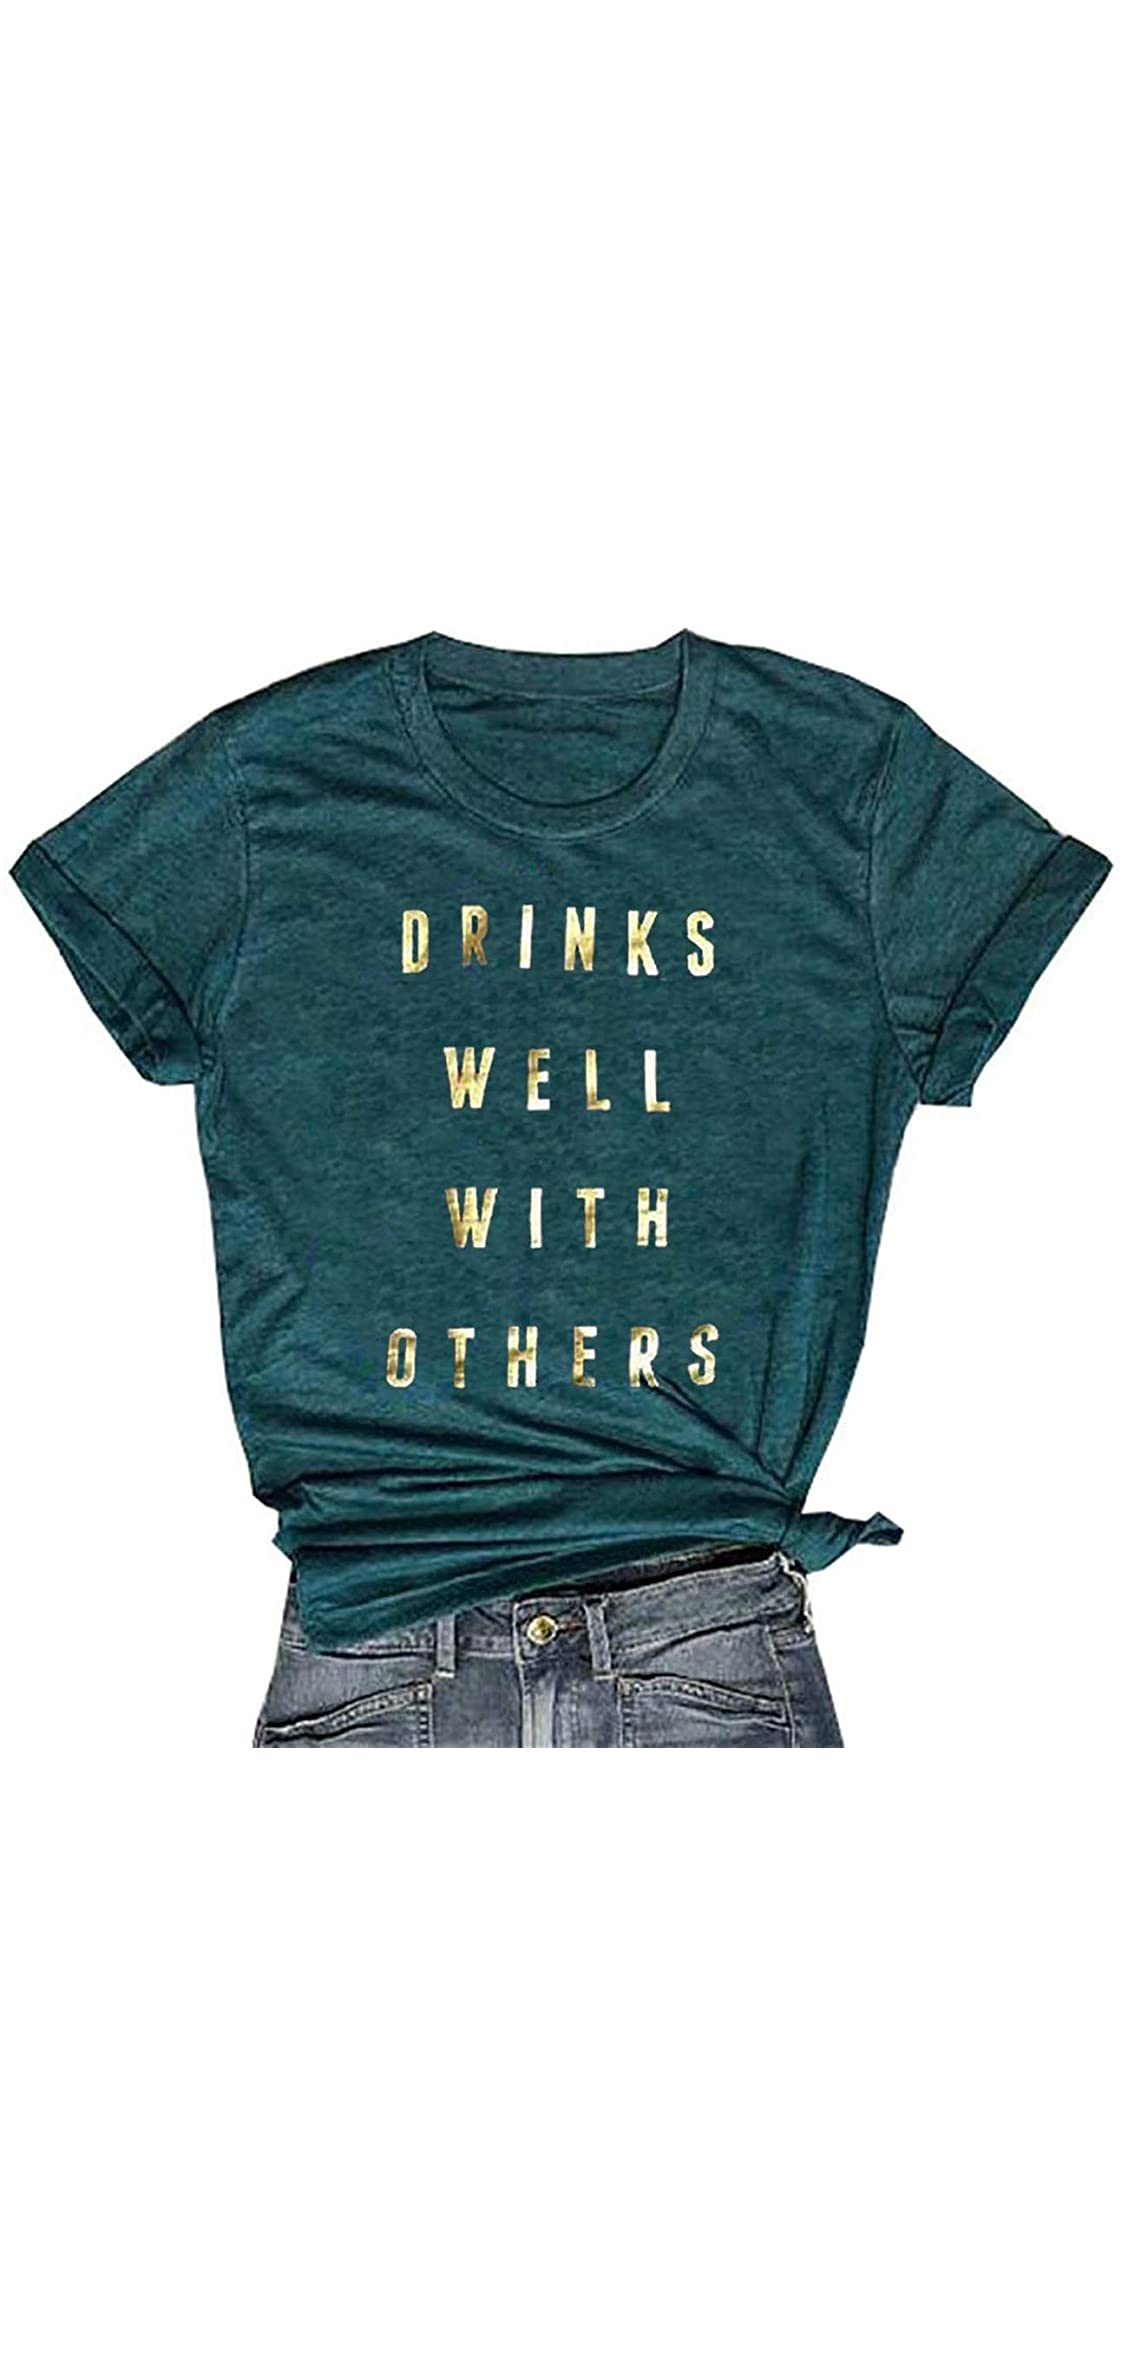 Drinks Well With Others T Shirt Women Letter Print Alcohol Funny